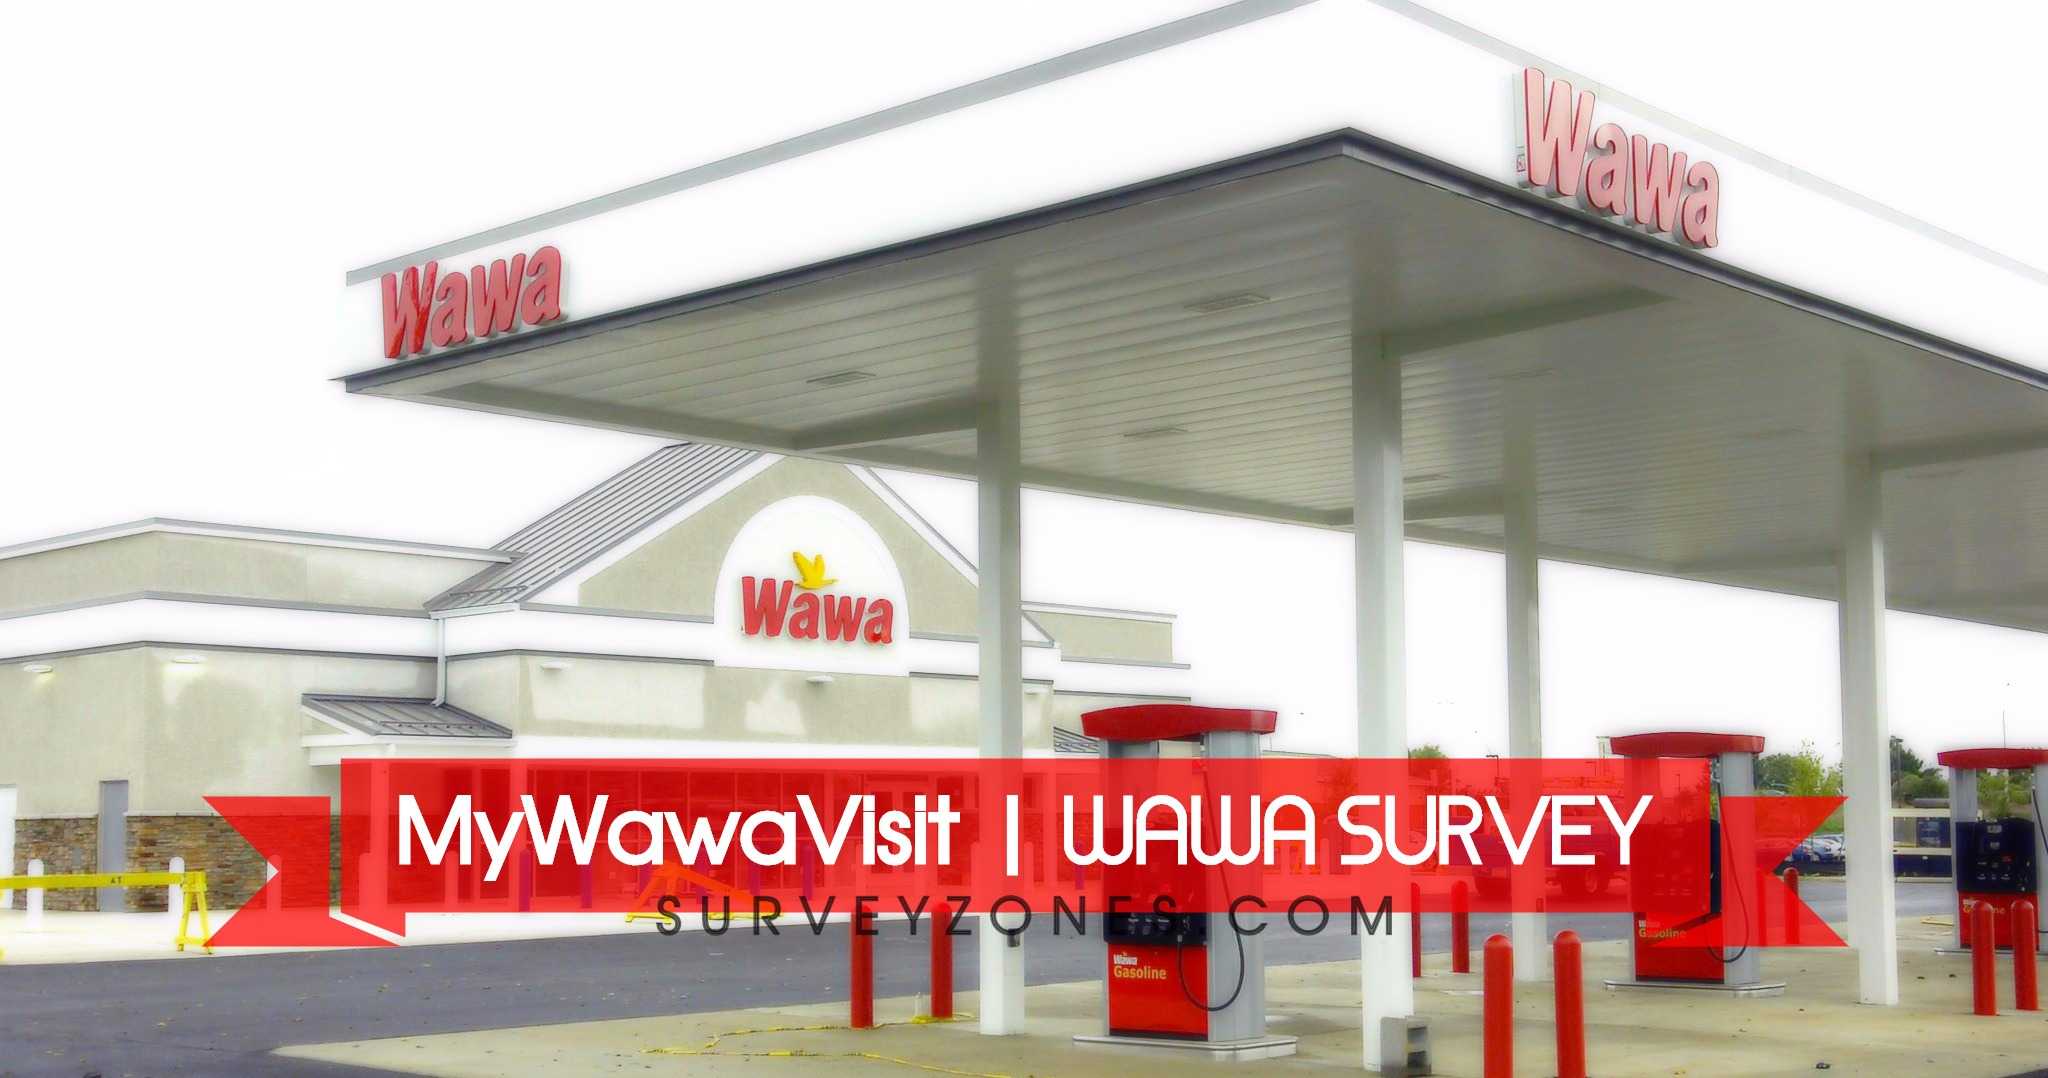 www.mywawavisit.com | Take WAWA SURVEY & Win Wawa $250 Gift Card